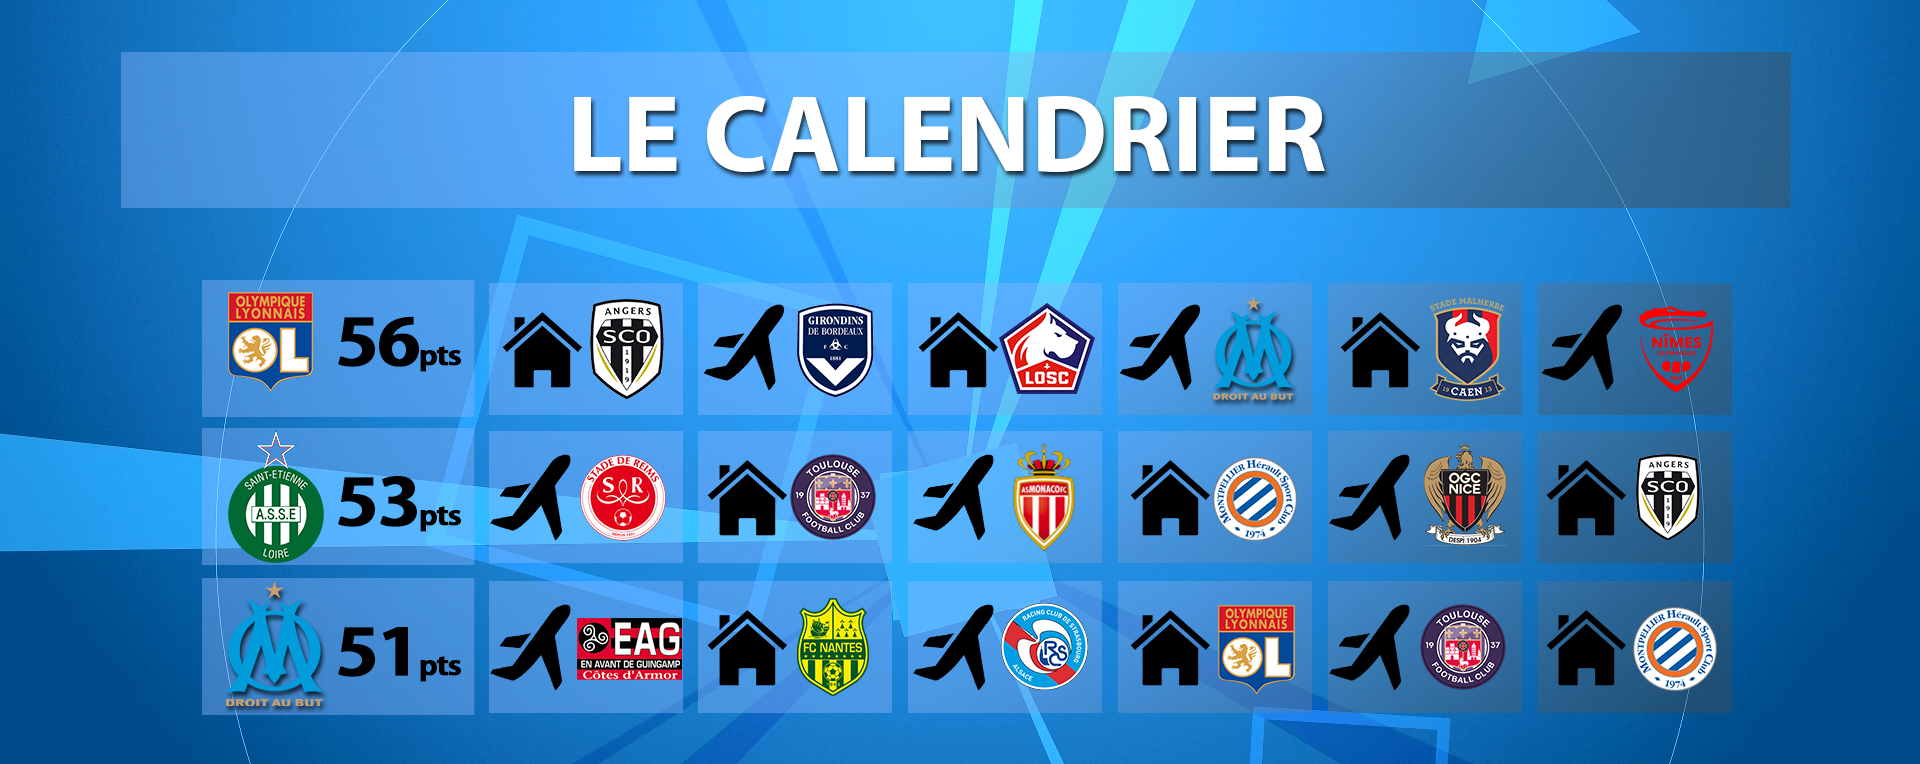 190417_calendrier.png (1.74 MB)